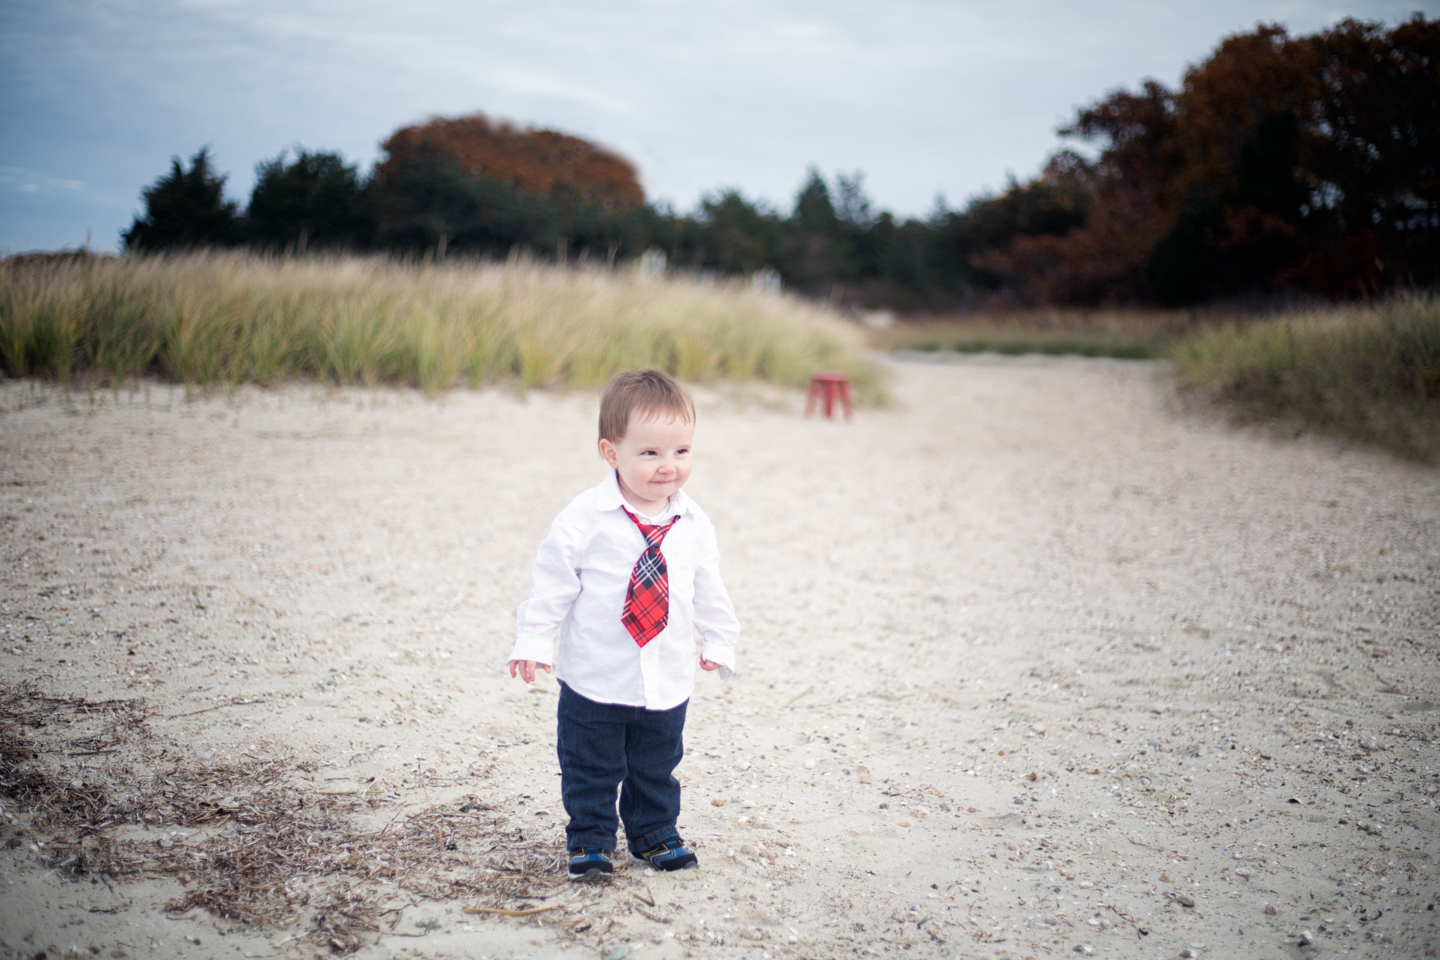 boston-photographer-kid-beach.jpg